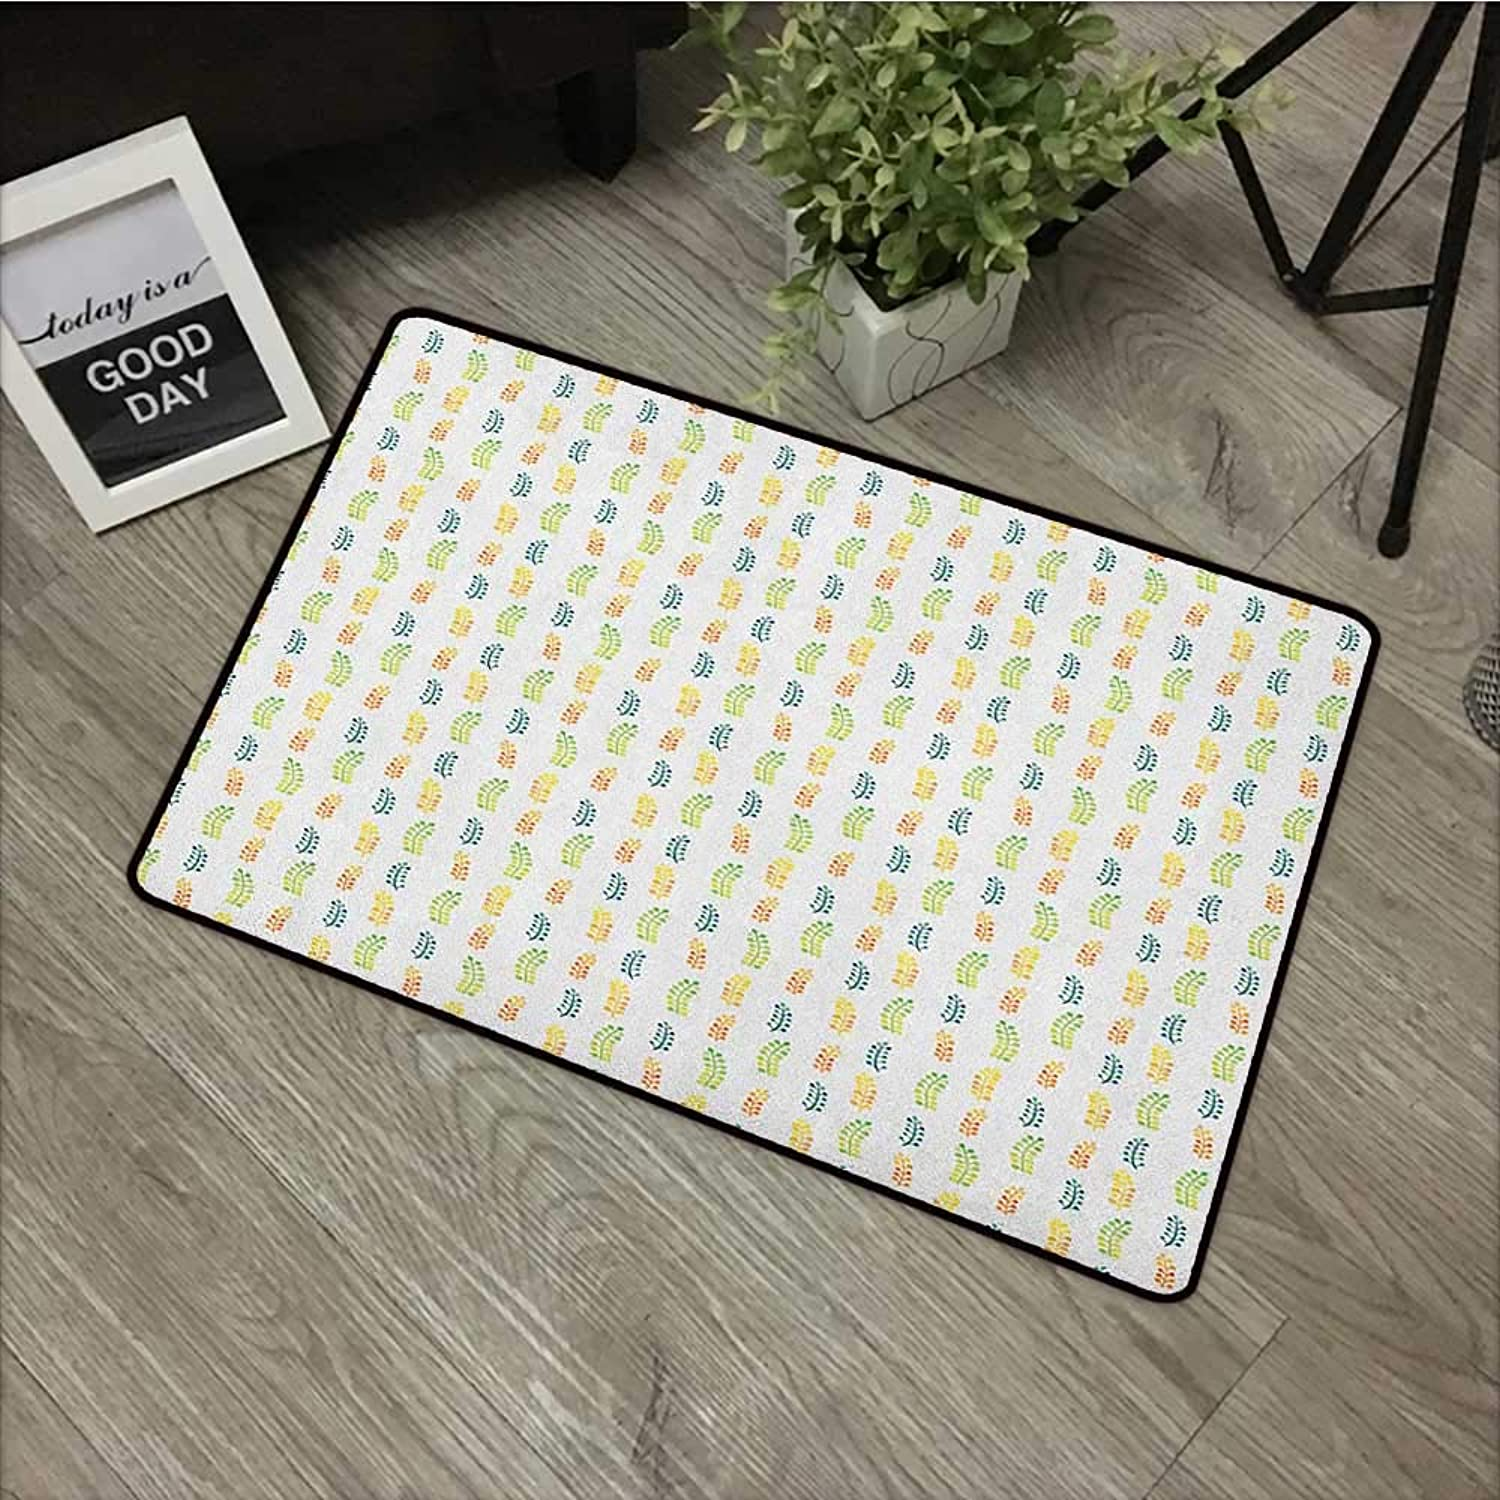 Living Room Door mat W35 x L59 INCH Floral,Hand Drawn Watercolor Foliage Leaves with Many colors Botany Themed Illustration, Multicolor Easy to Clean, Easy to fold,Non-Slip Door Mat Carpet